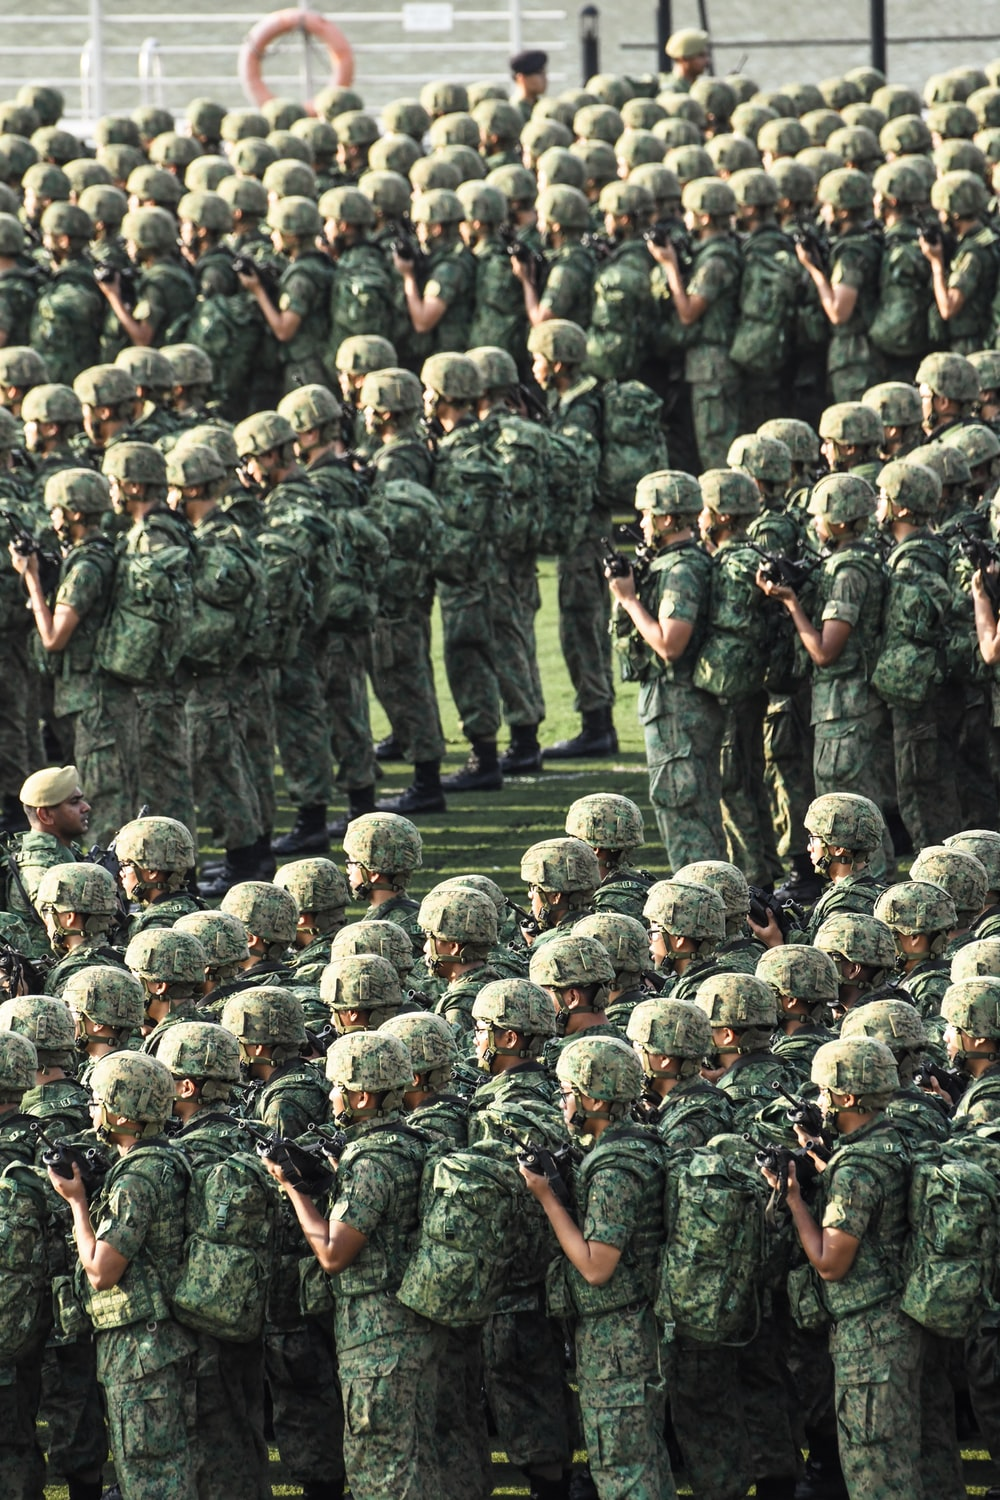 soldiers standing aligned together